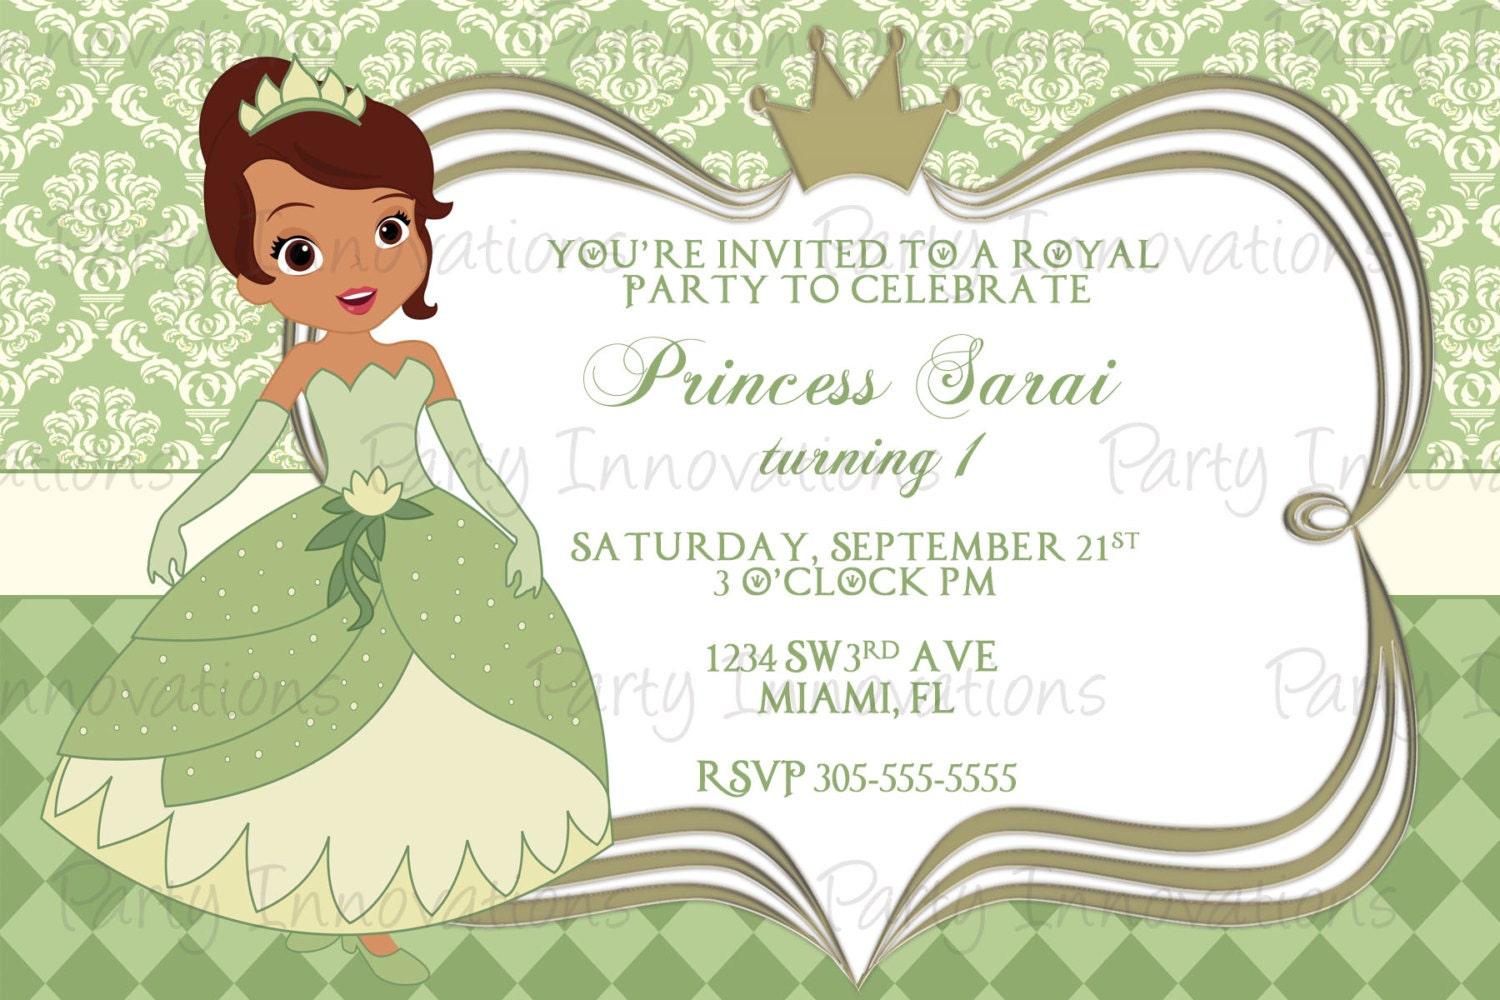 Printable Princess Tiana Birthday Party Invitation – Princess Tiana Party Invitations